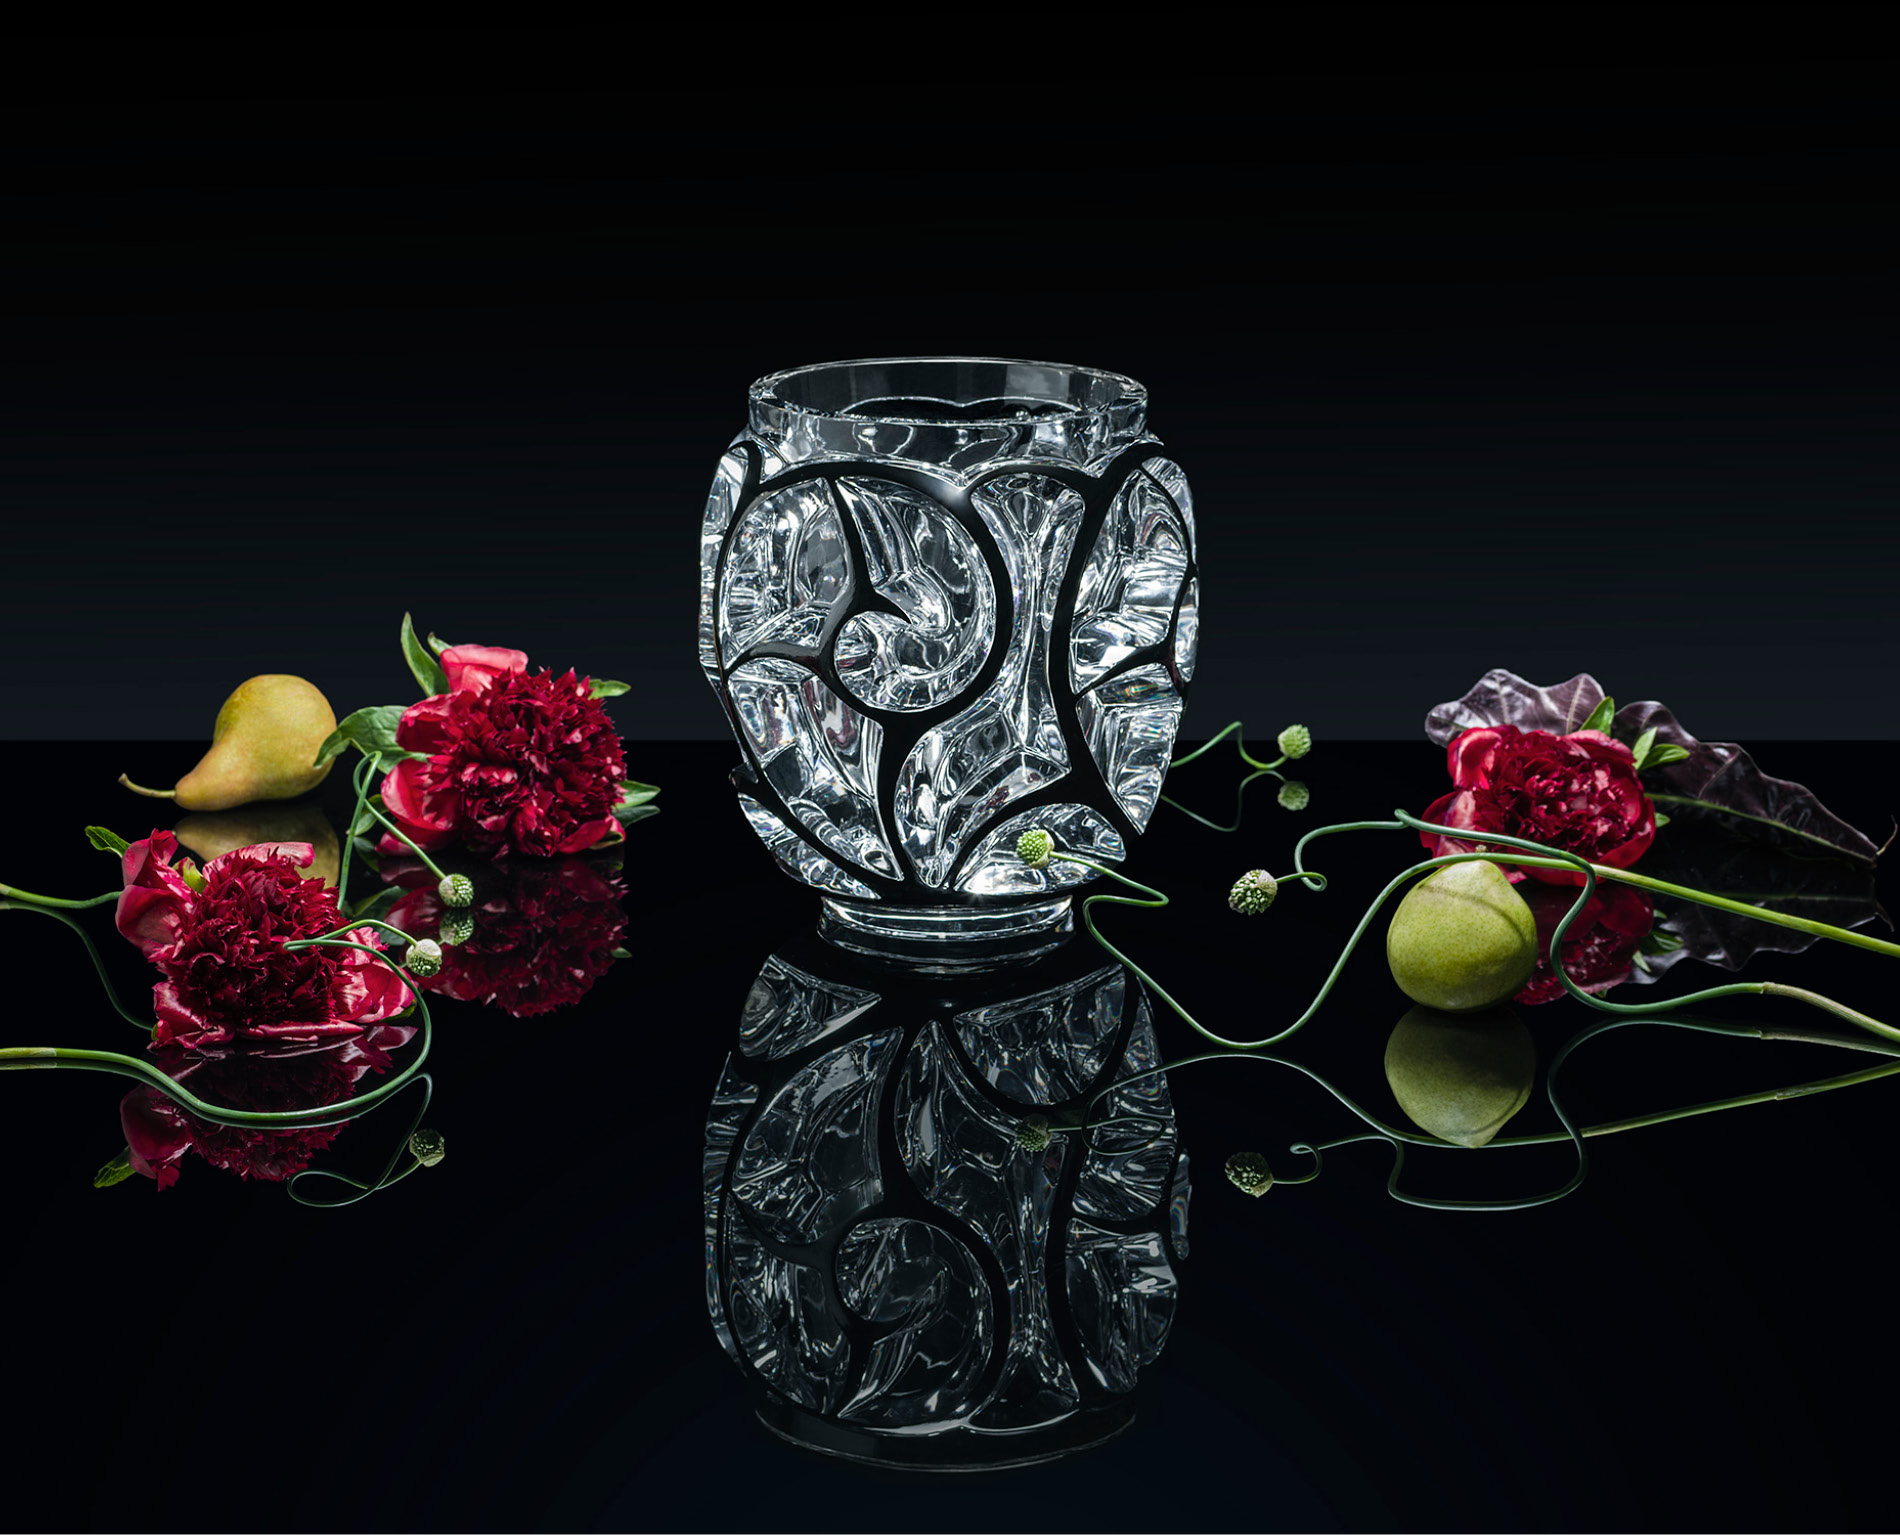 Elegant crystal vase by Lalique shot with fruits and flowers